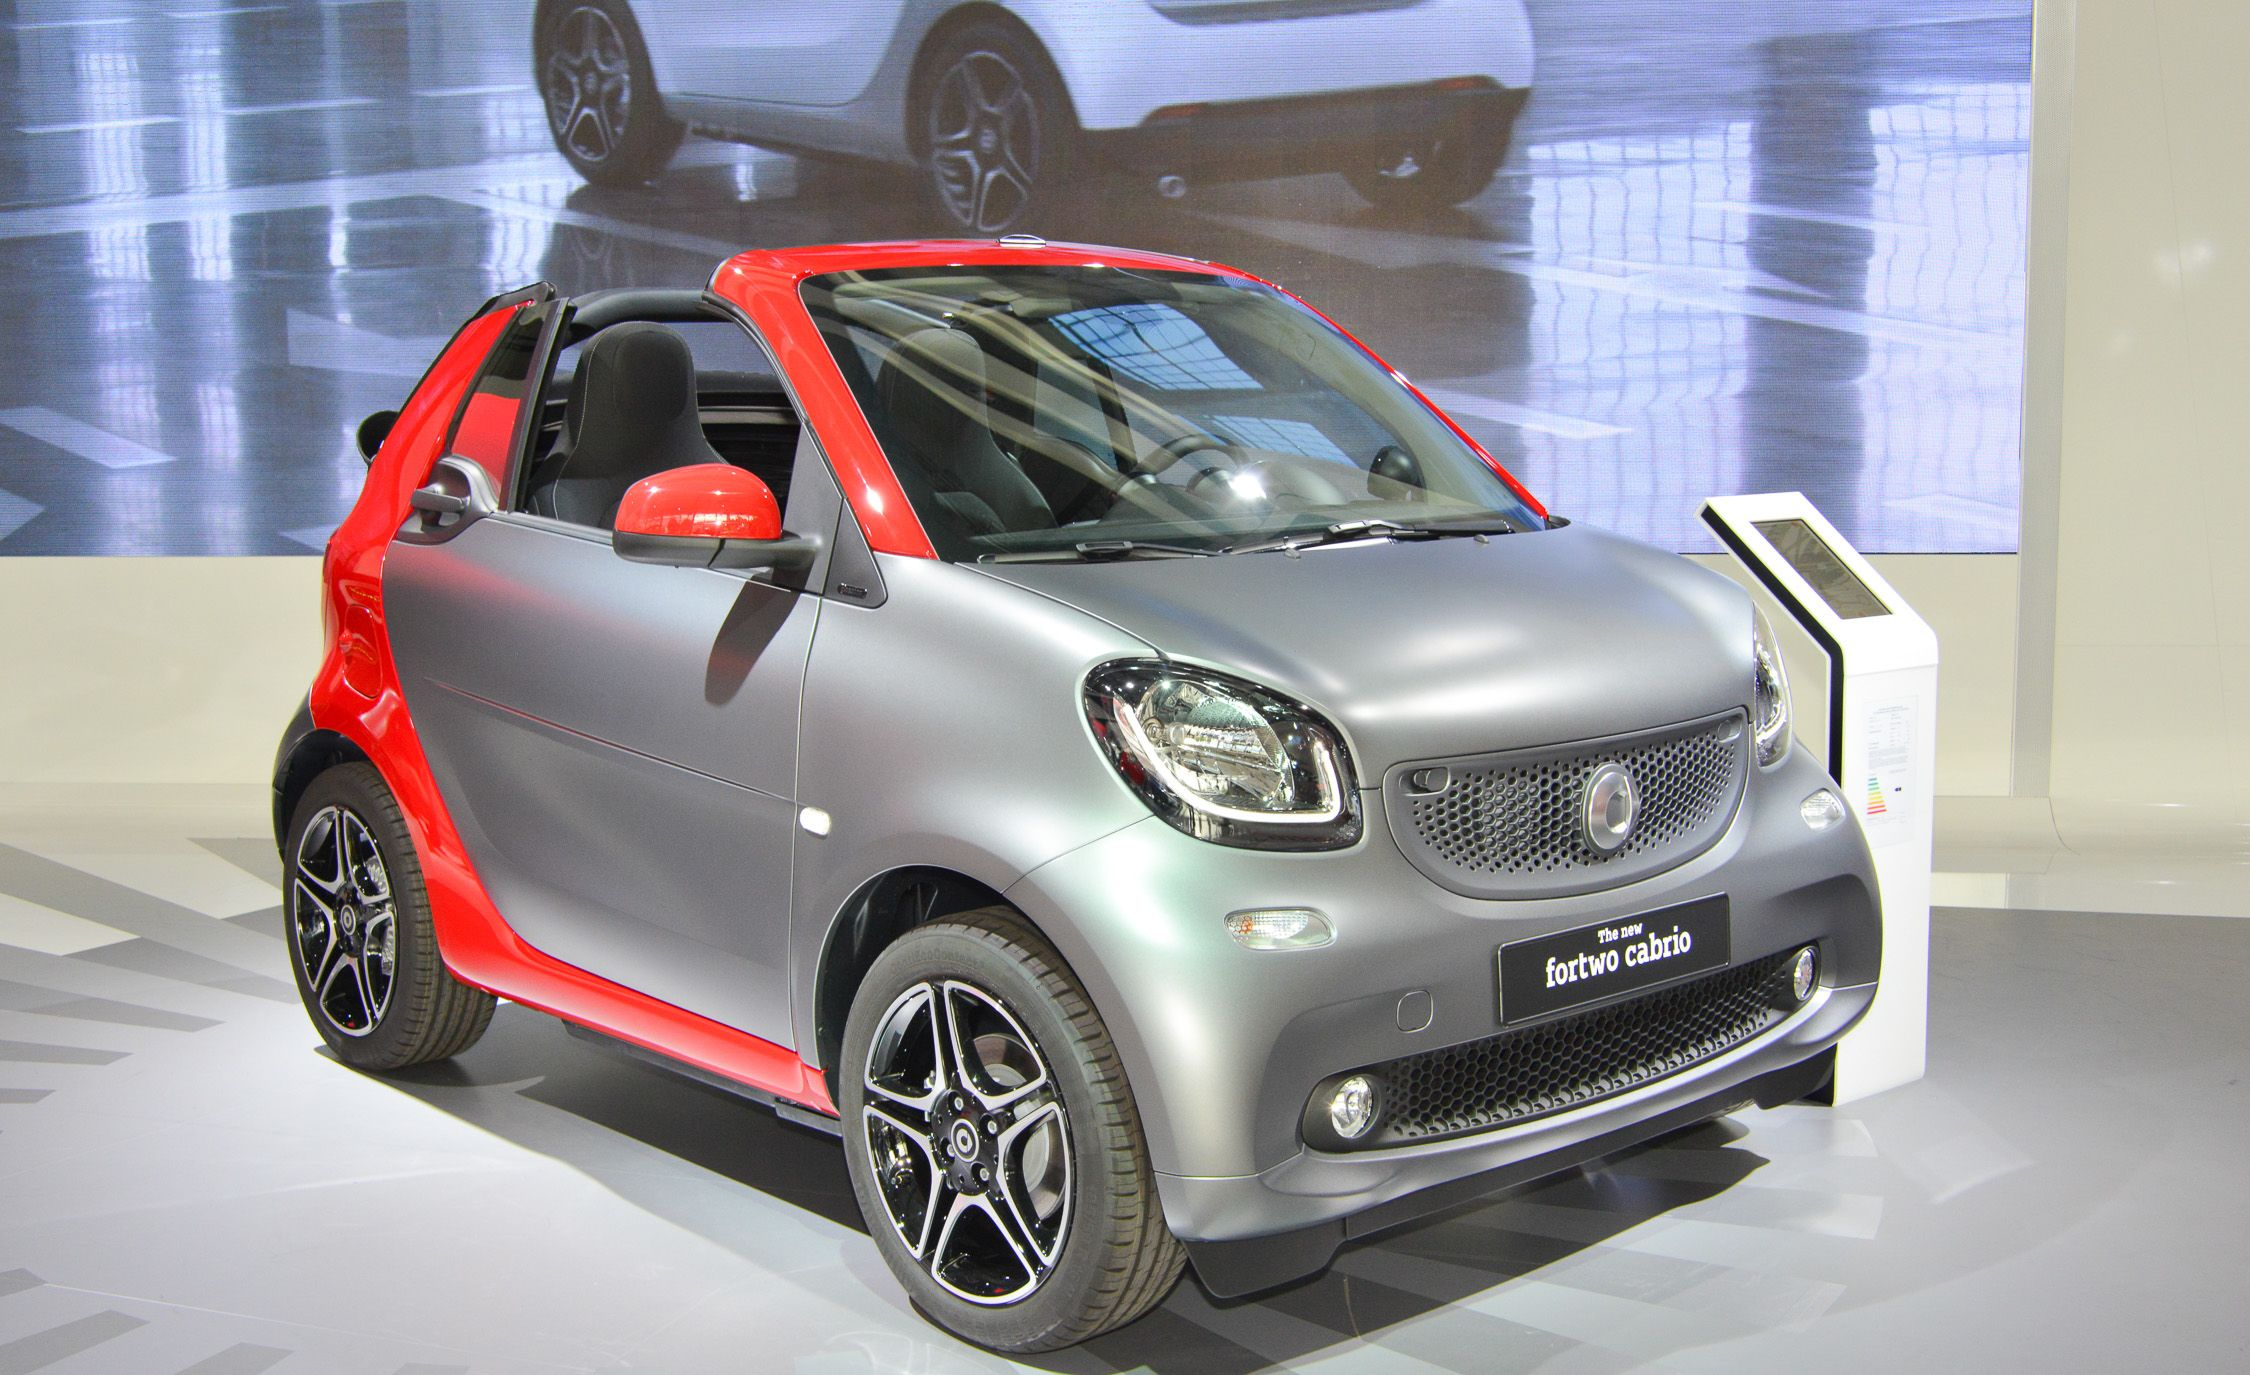 2017 Smart Fortwo Cabriolet Debuts: New-Gen Car, Four Percent More Roof